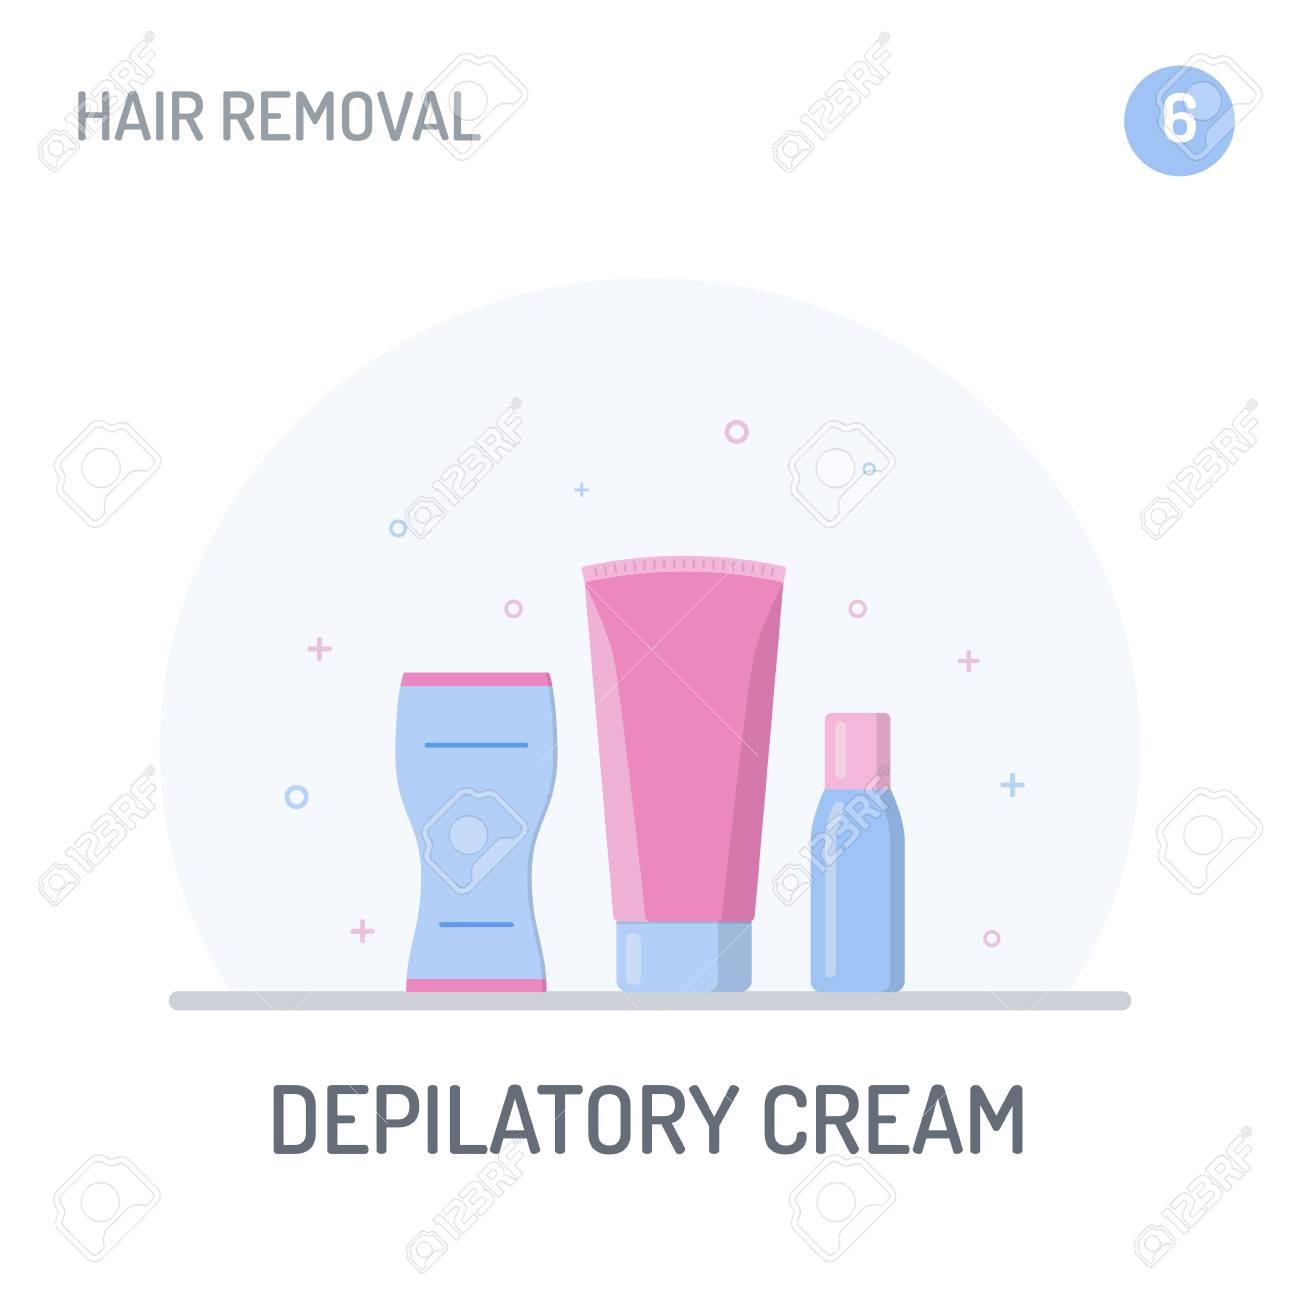 Hair Removal Depilatory Cream Creams And A Spatula For Applying